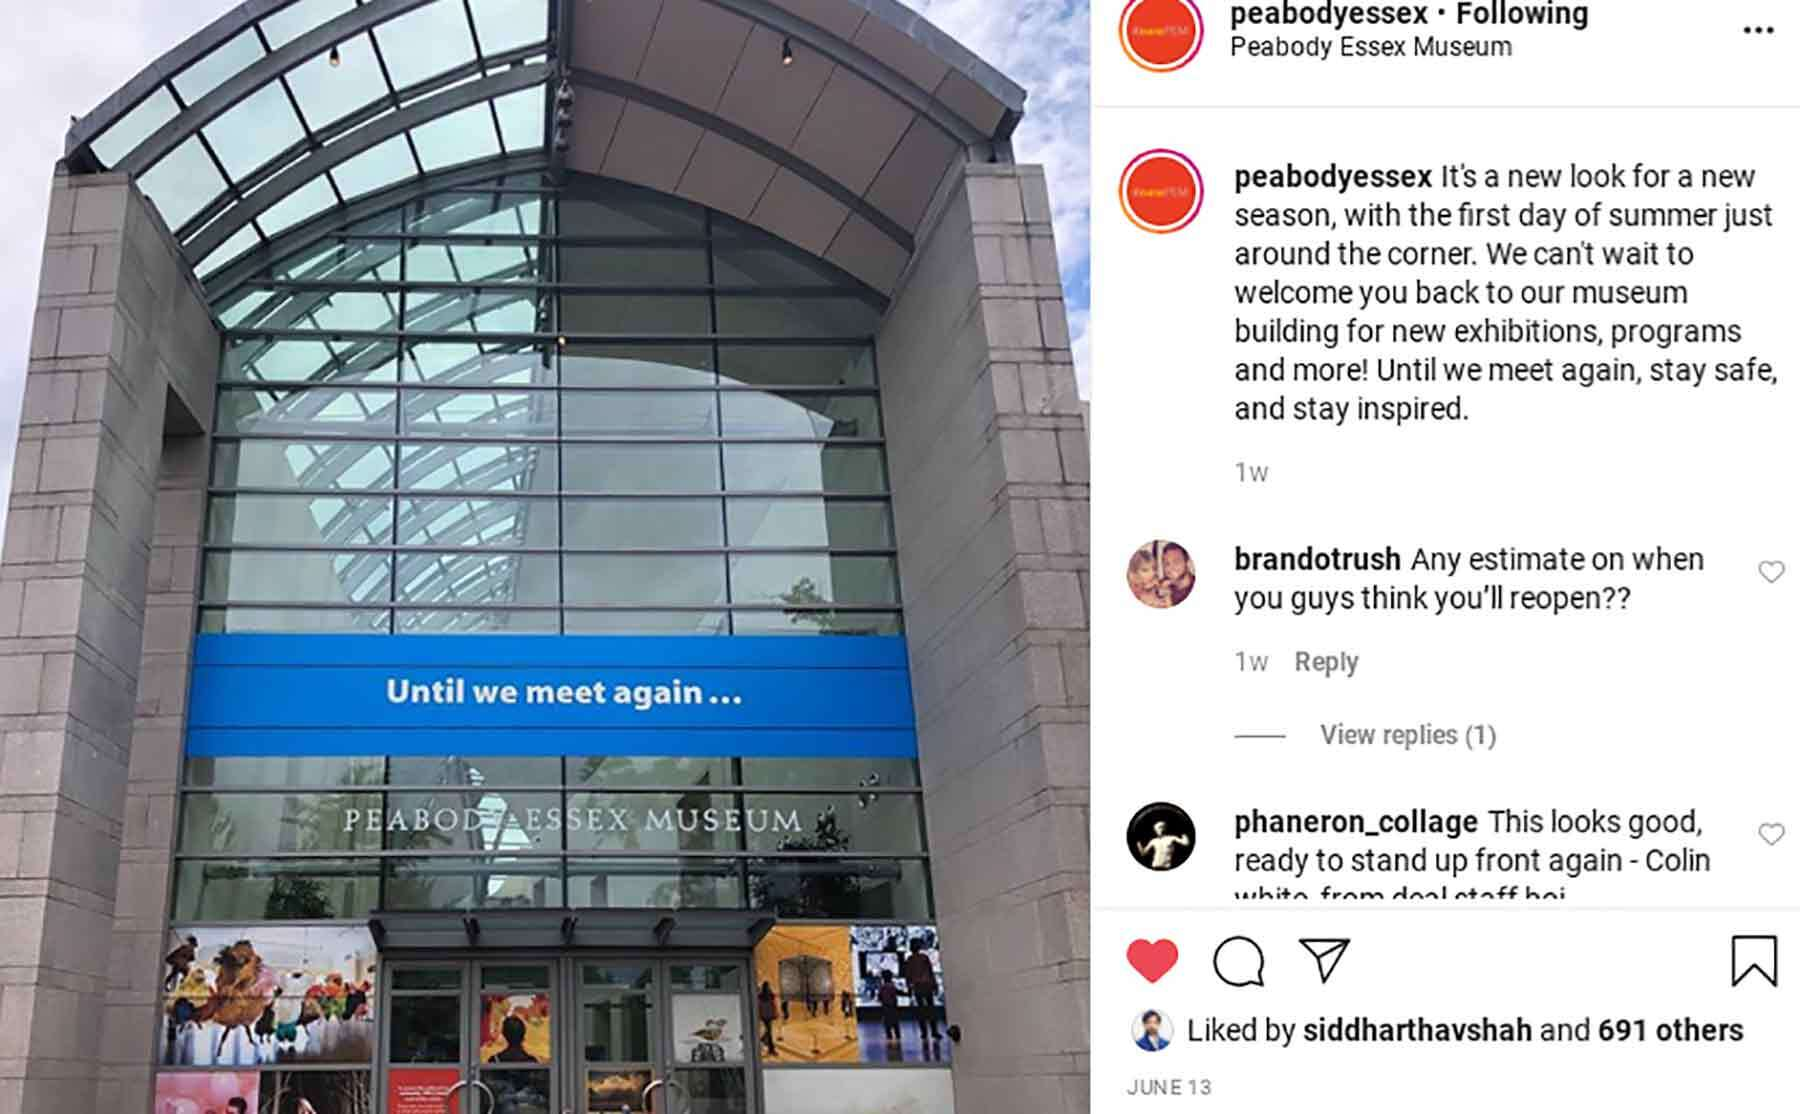 Instagram shot of the museum entrance and comments